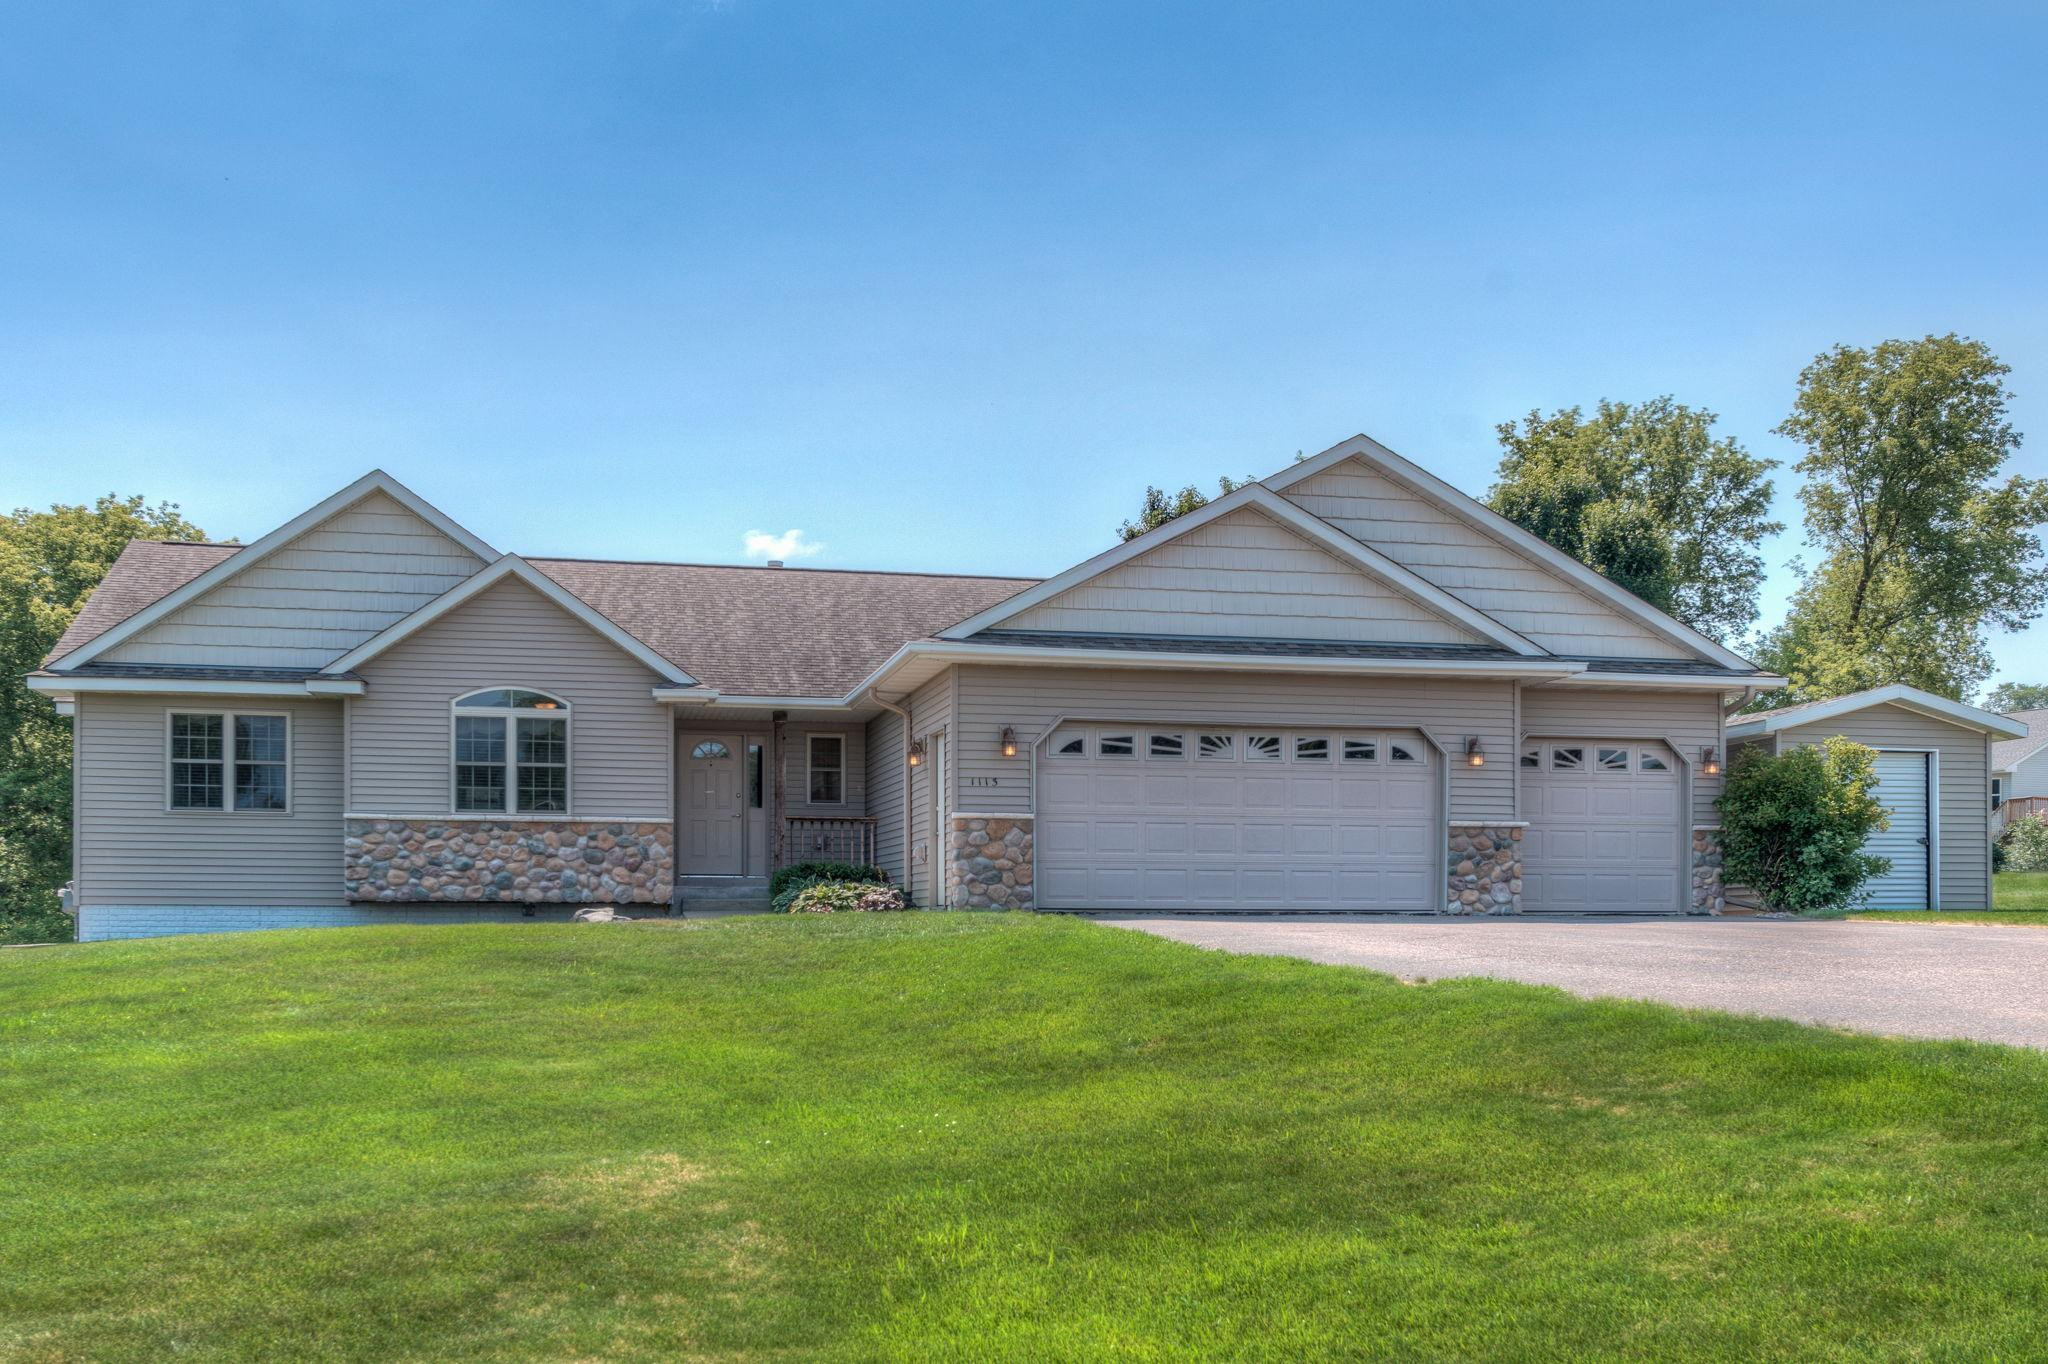 W1113 Aspen Drive, Spring Valley, WI